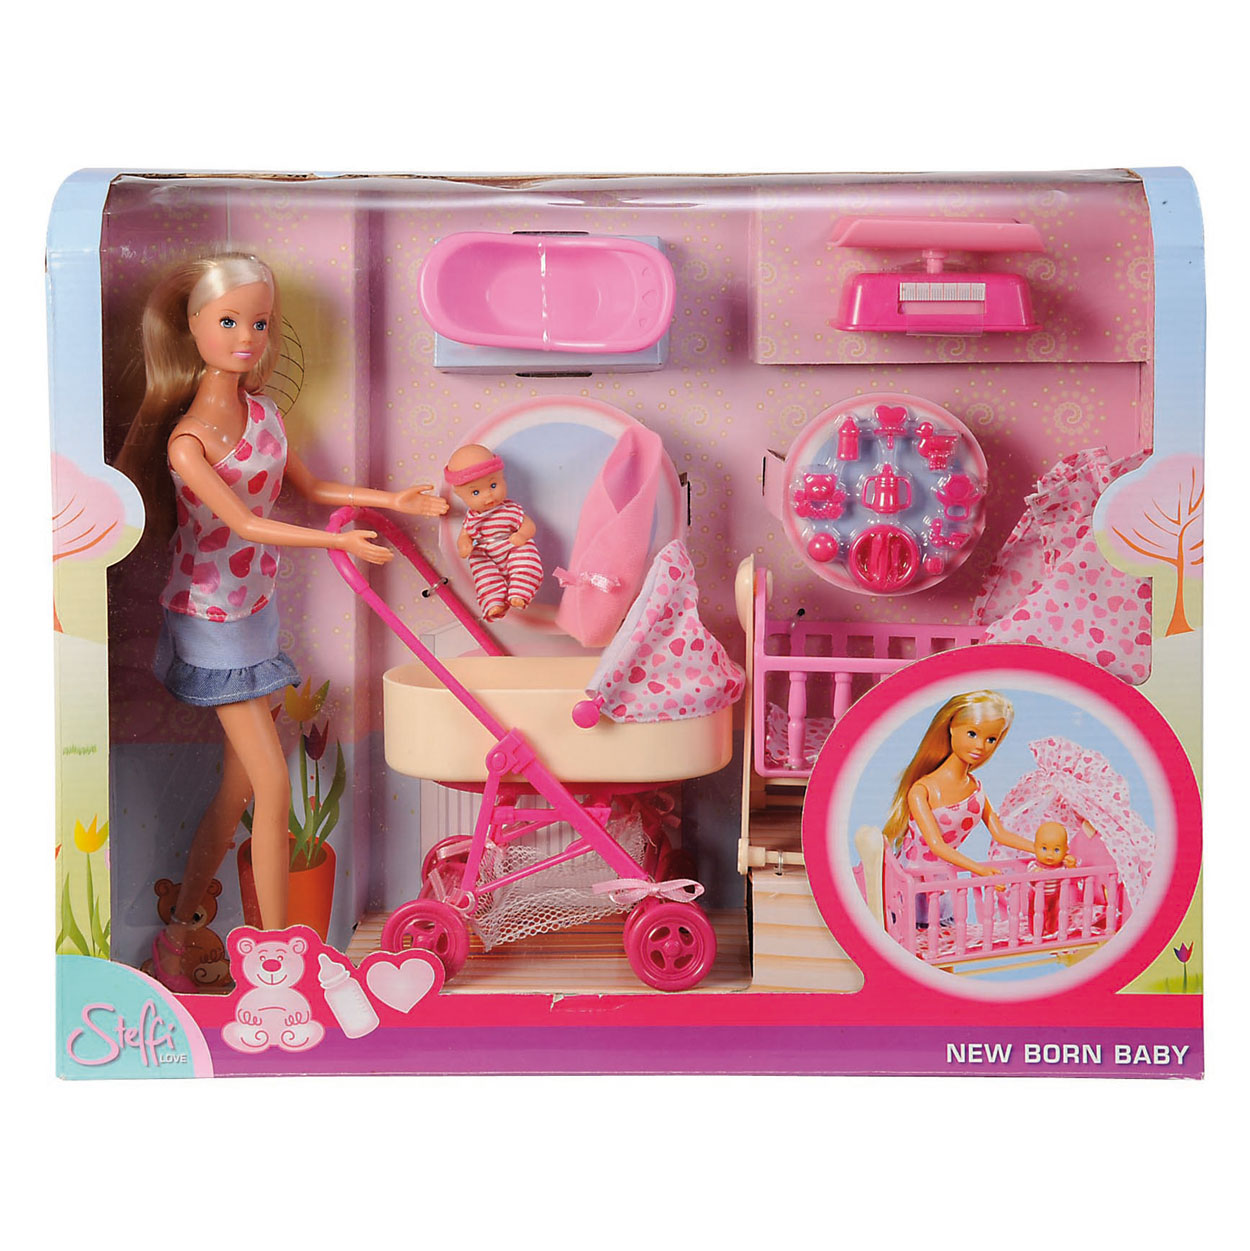 New Baby Doll Toy Steffi Love New Born Baby Set Online